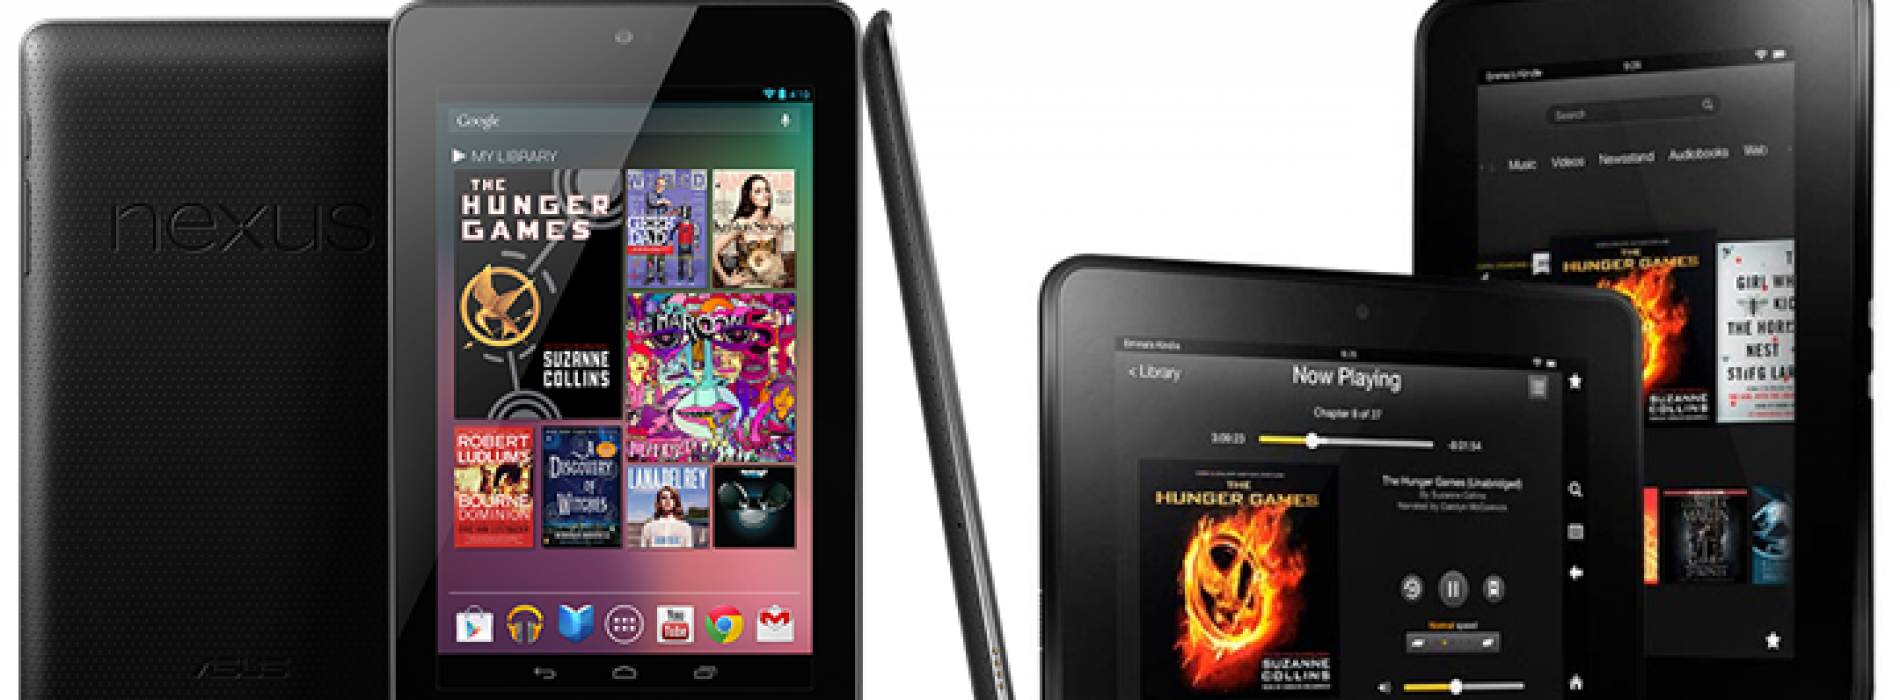 Comparing the Nexus 7 to the Kindle Fire HD